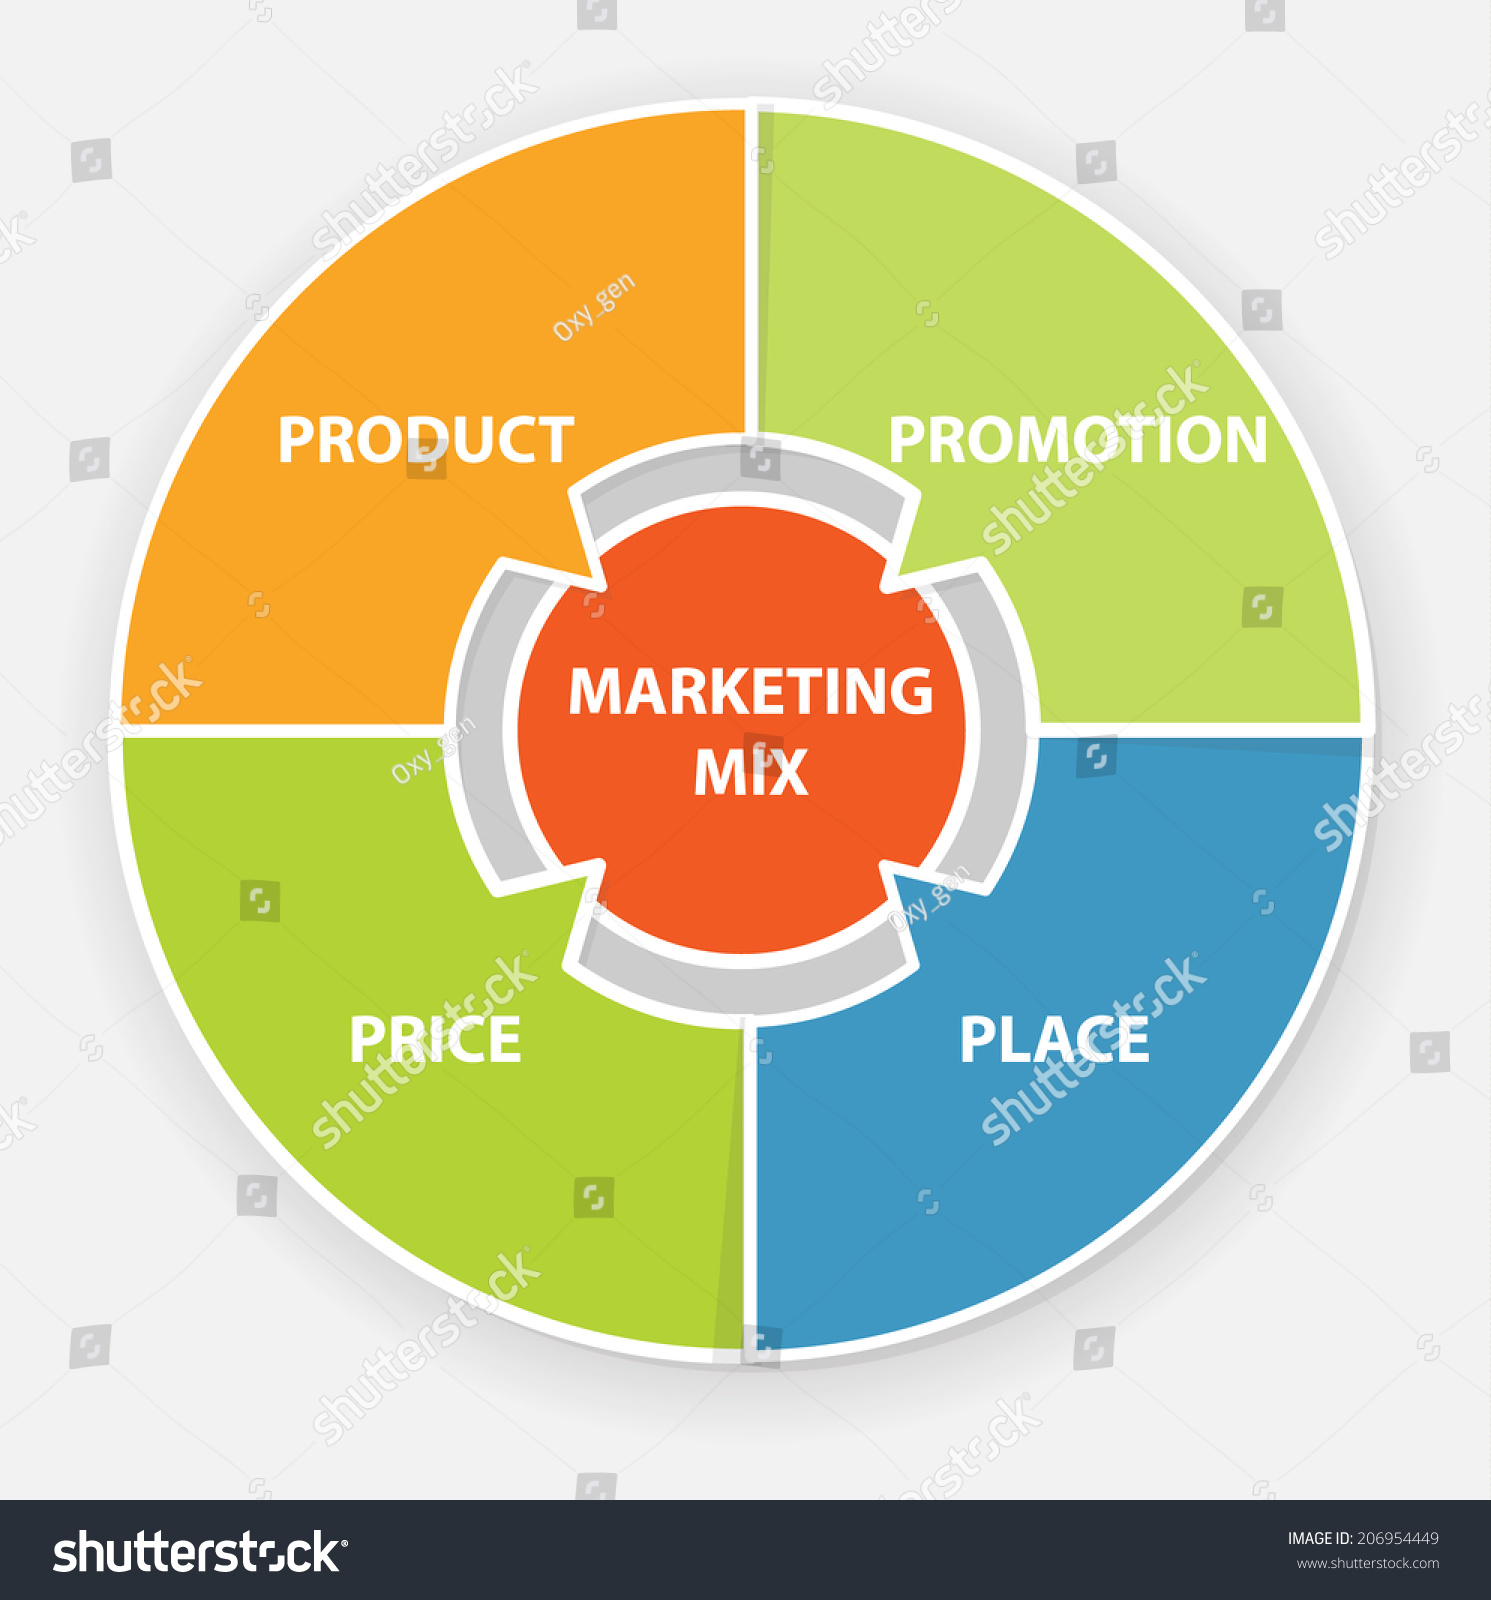 marketing mix price and the hong Start studying ch 13: the marketing mix: product, place, promotion, price learn vocabulary, terms, and more with flashcards, games, and other study tools.